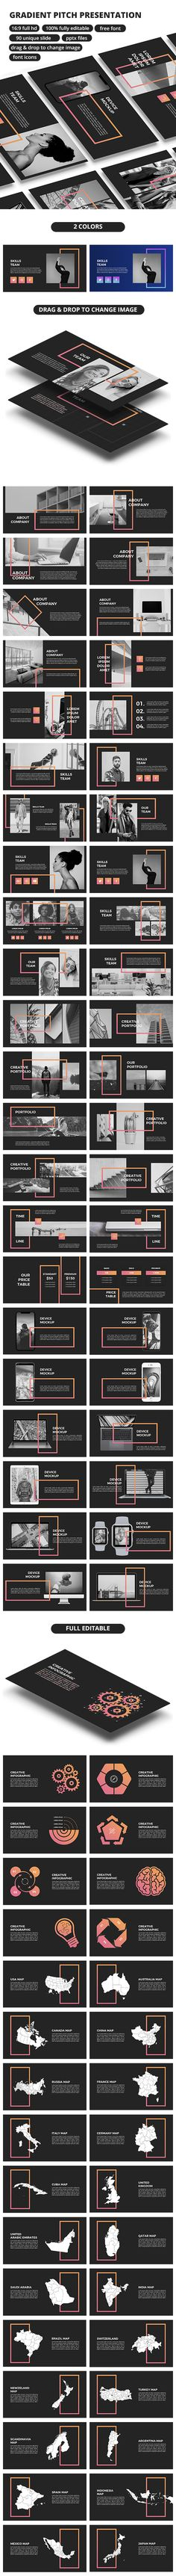 #Gradient #Pitch - #PowerPoint Presentation - Business PowerPoint Templates